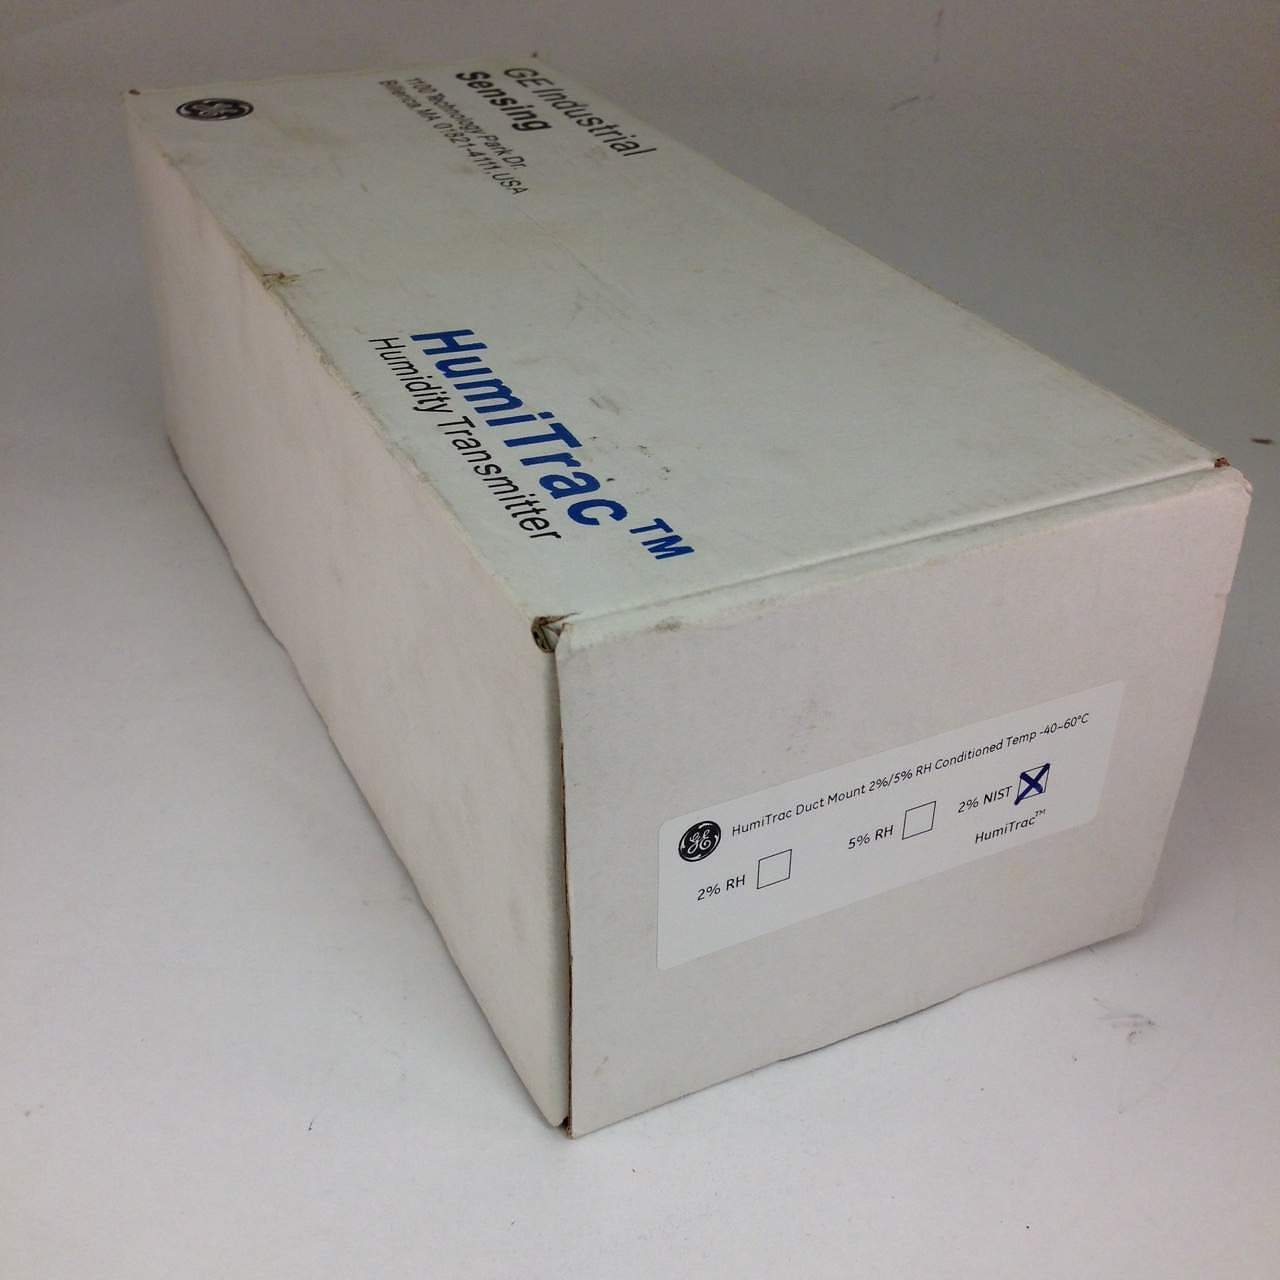 ge humitrac p40250151  duct mount  2 rh with nist